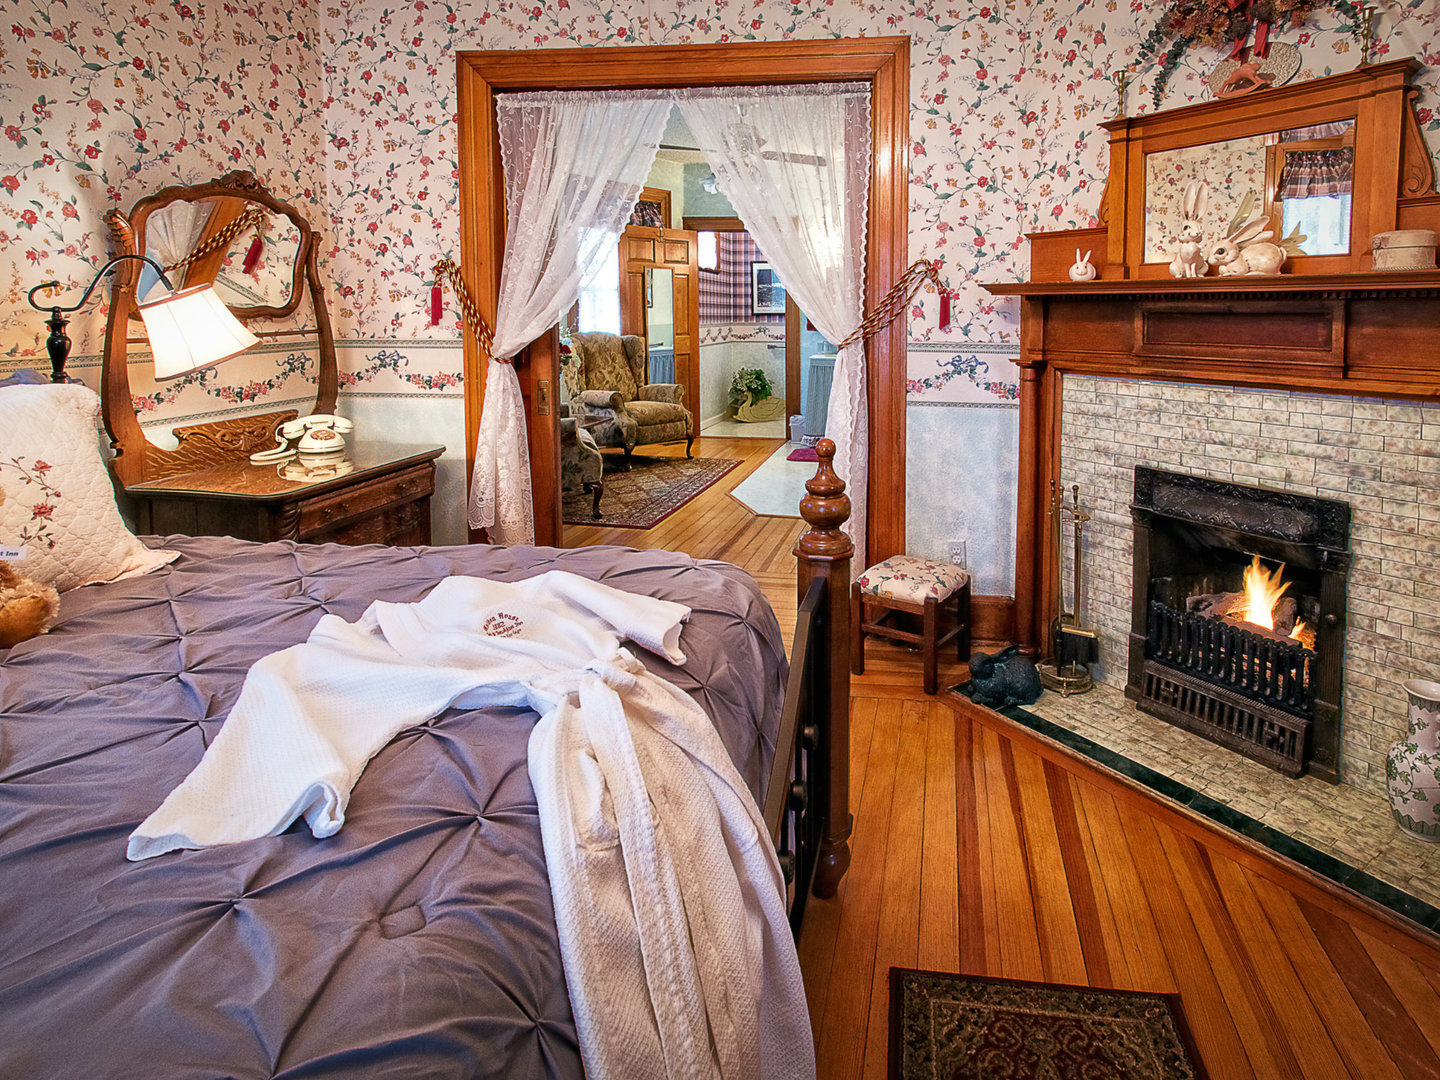 A bedroom with a bed and a fireplace at Holden House 1902 Bed & Breakfast Inn.